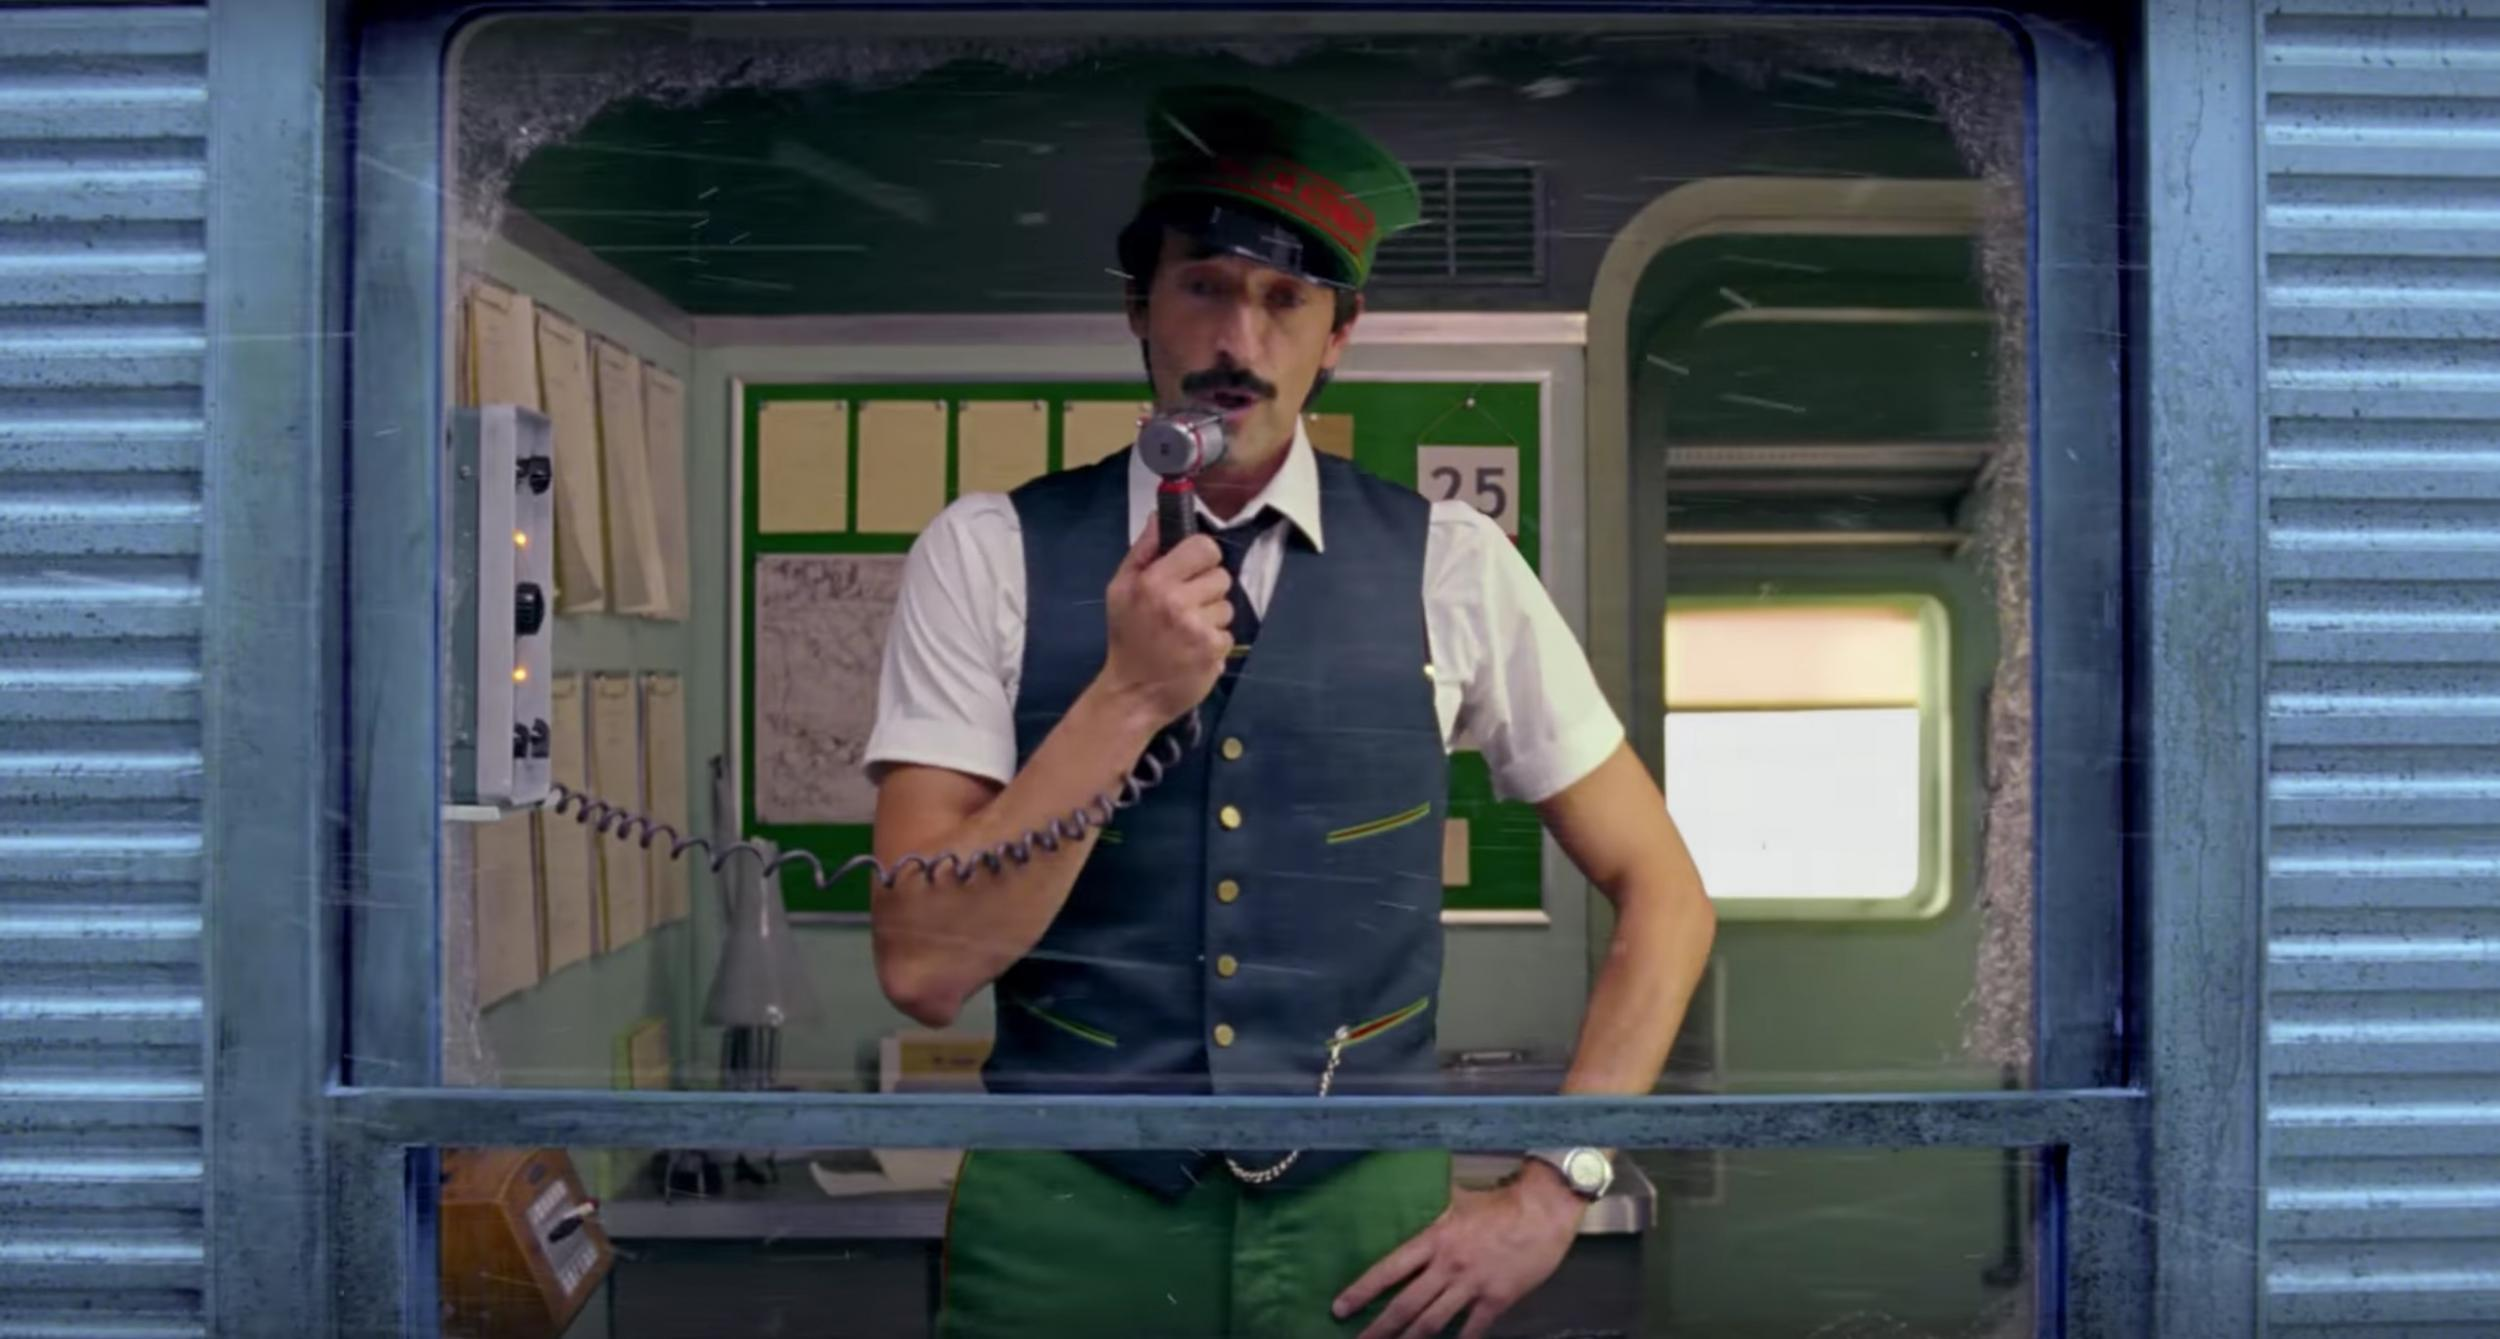 Wes Anderson directed a Christmas short film for H&M and it's like a festive Darjeeling Limited